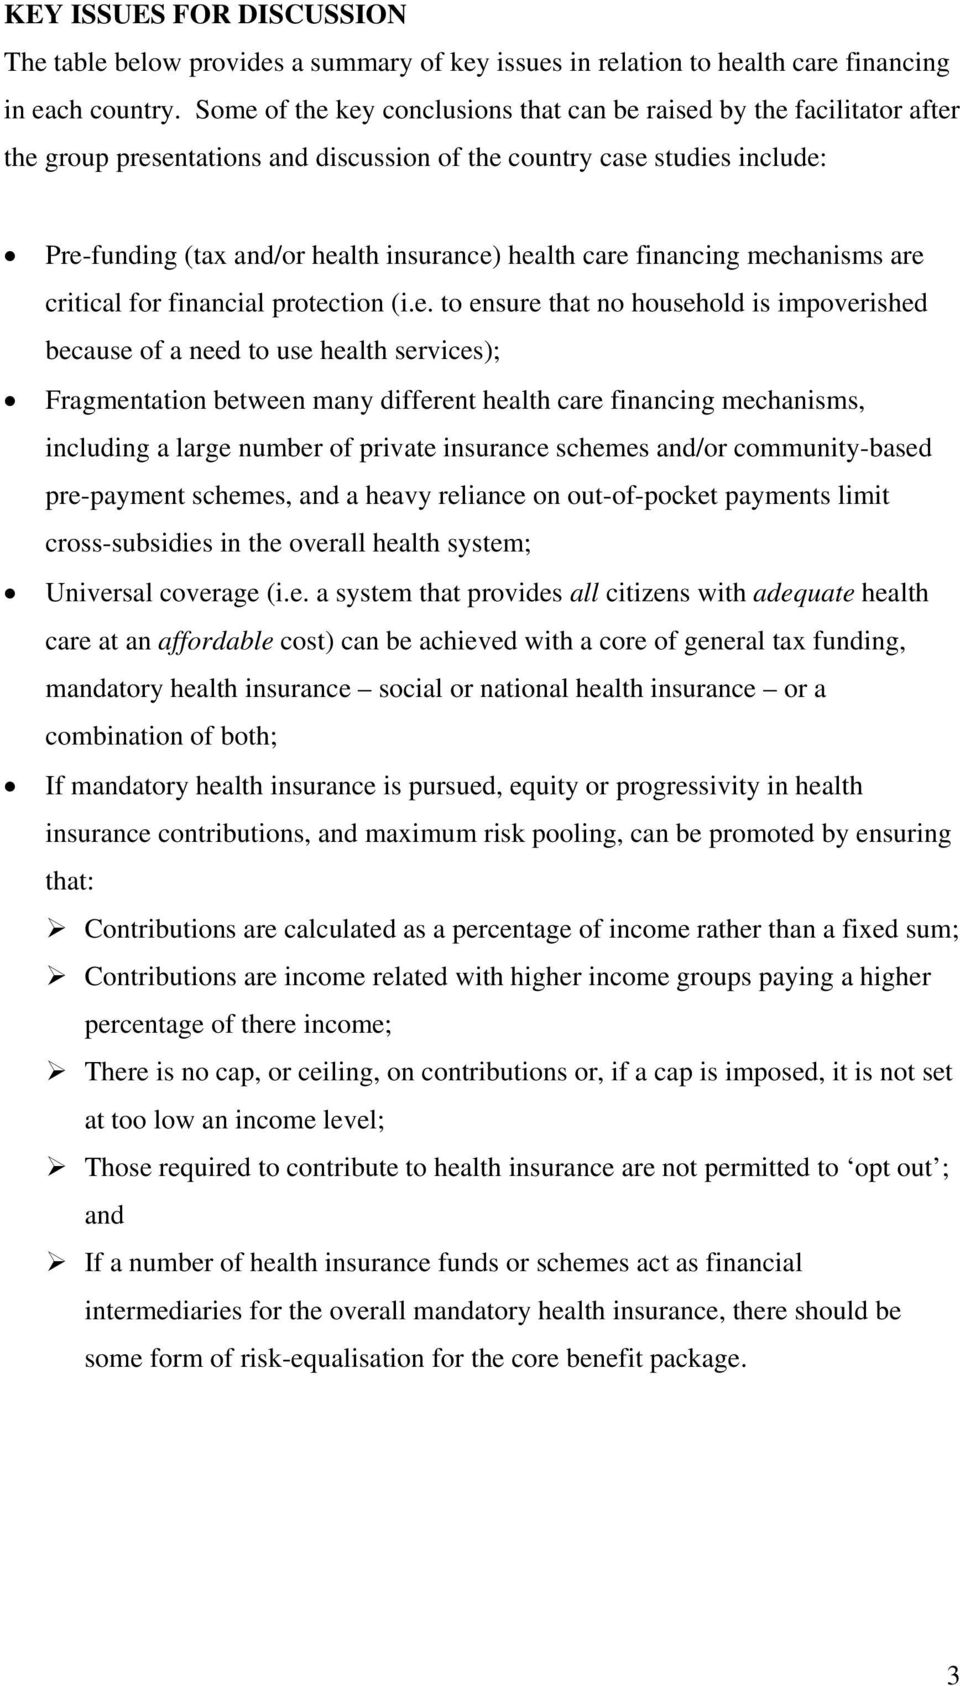 care financing mechanisms are critical for financial protection (i.e. to ensure that no household is impoverished because of a need to use health services); Fragmentation between many different